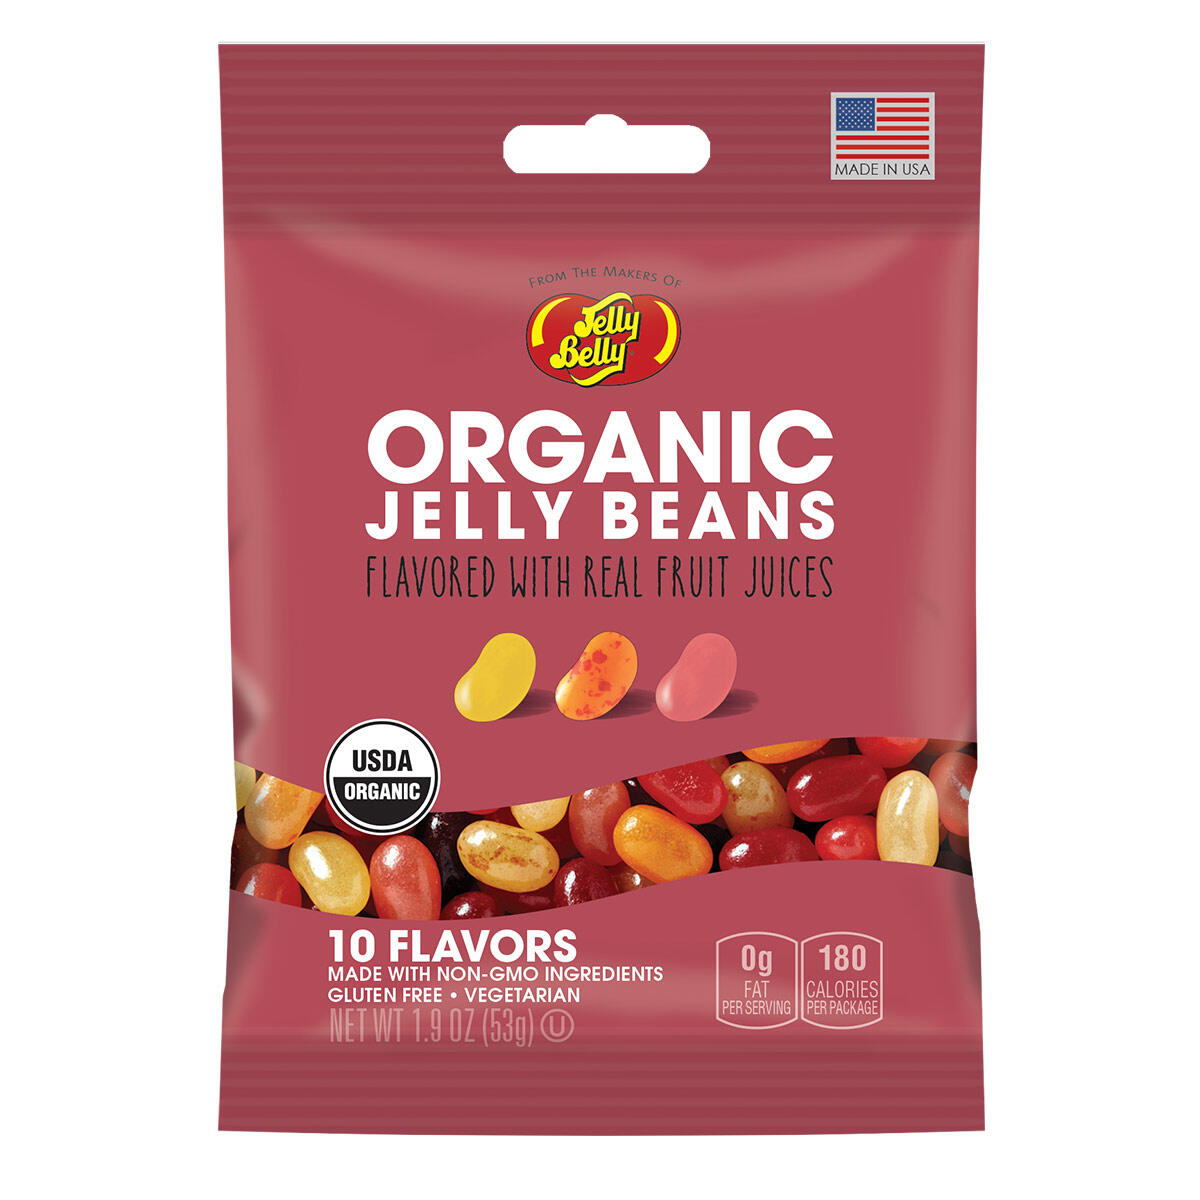 Organic Jelly Beans from the makers of Jelly Belly - 1.9 oz bag